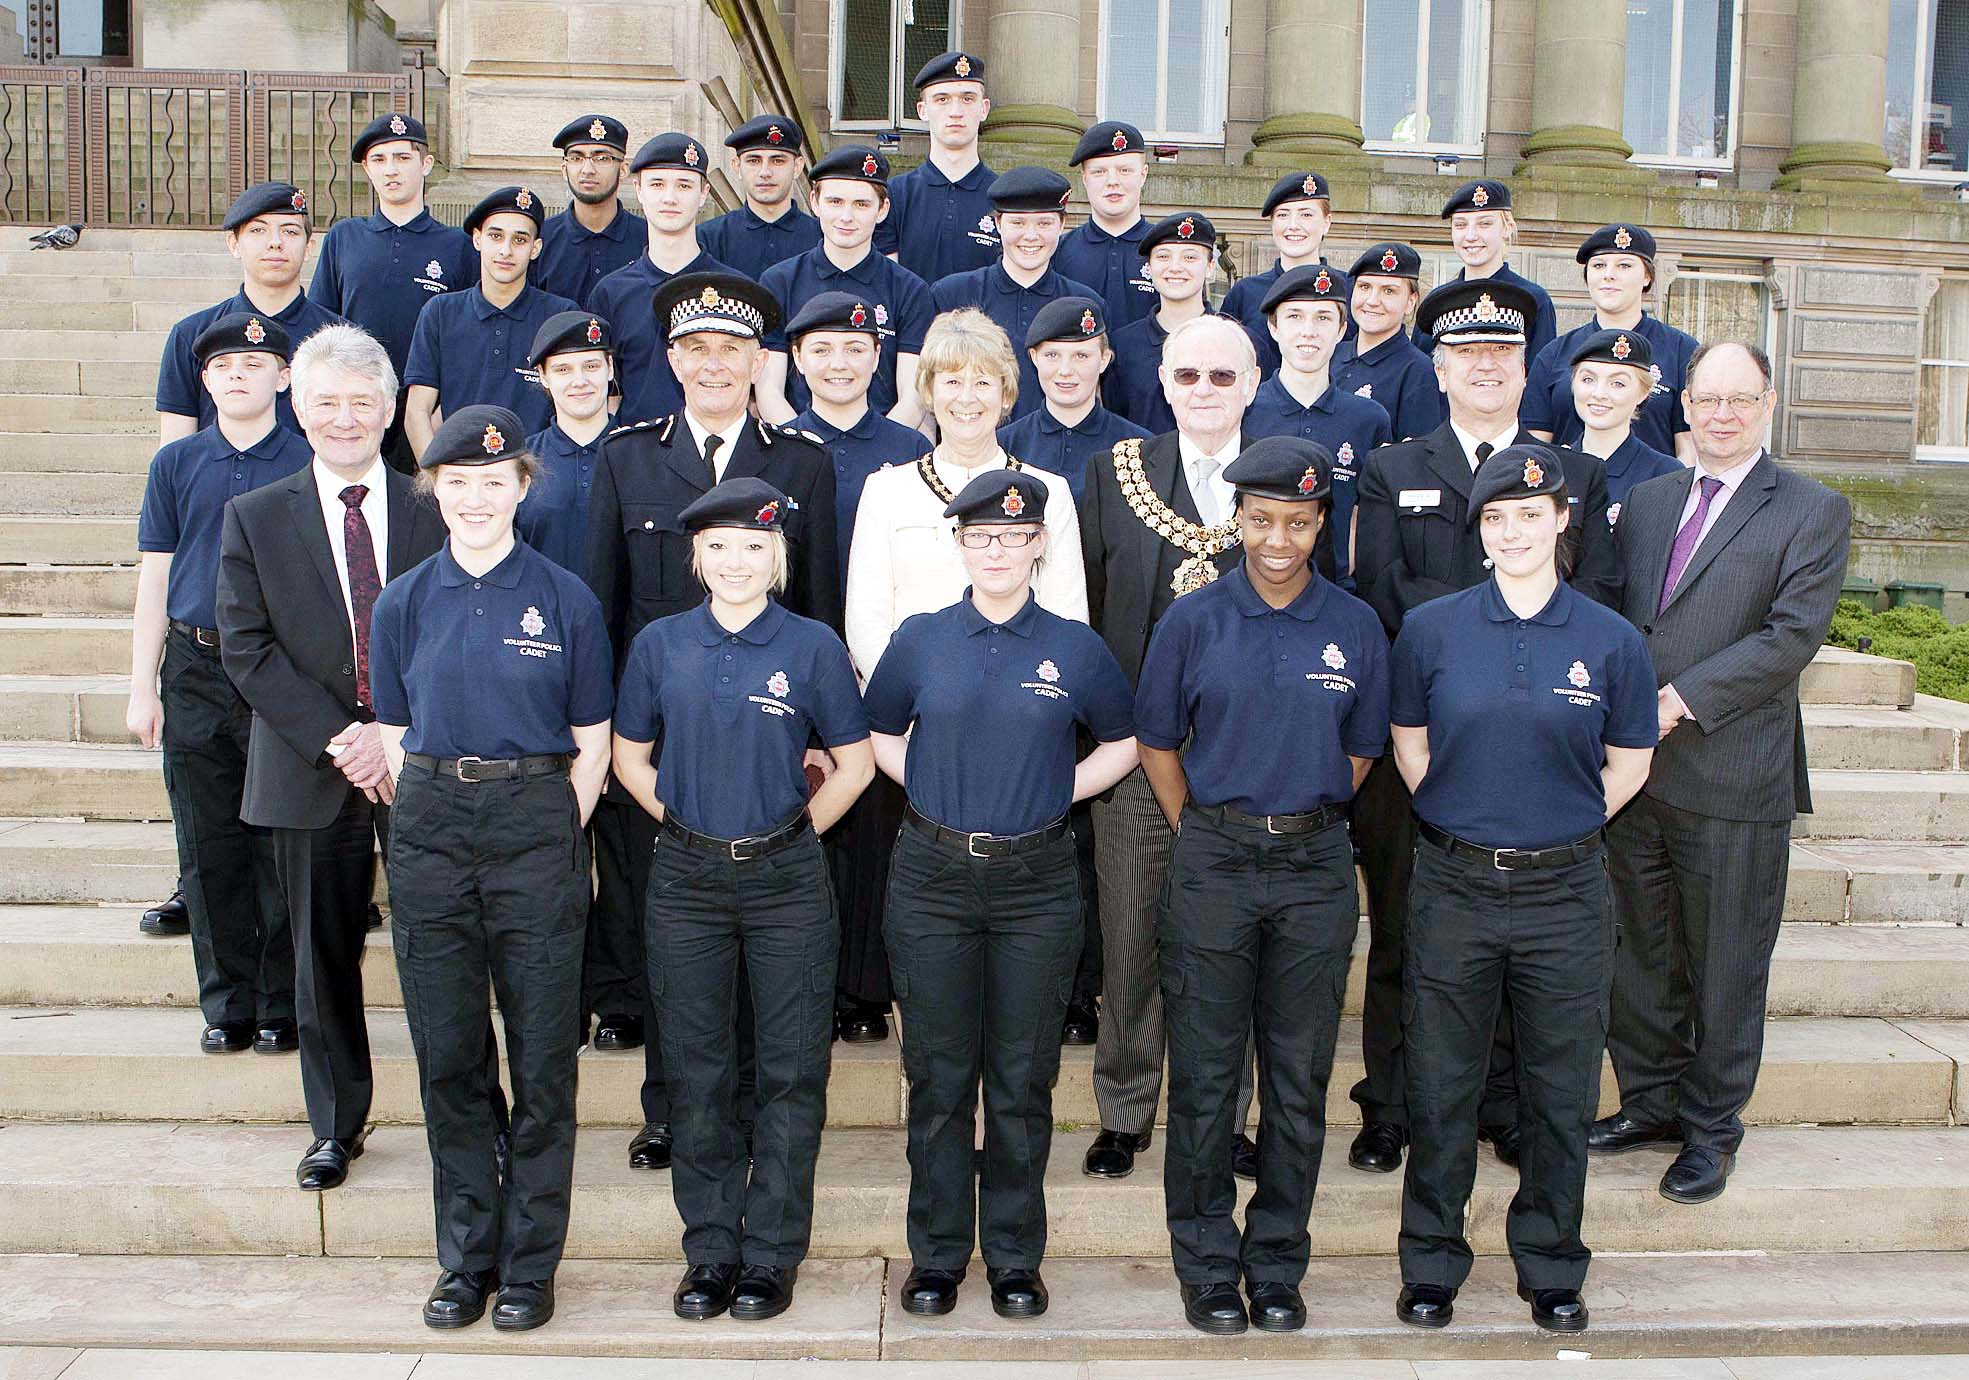 The cadets with police commissioner Tony Lloyd, Sir Peter Fahy, chief constable, Mayor and Mayoress of Bolton Cllr Colin Shaw and Dee Shaw, Ch Supt Shaun Donnellan, Bolton divisional commander, and Jim Battle, deputy police commissioner